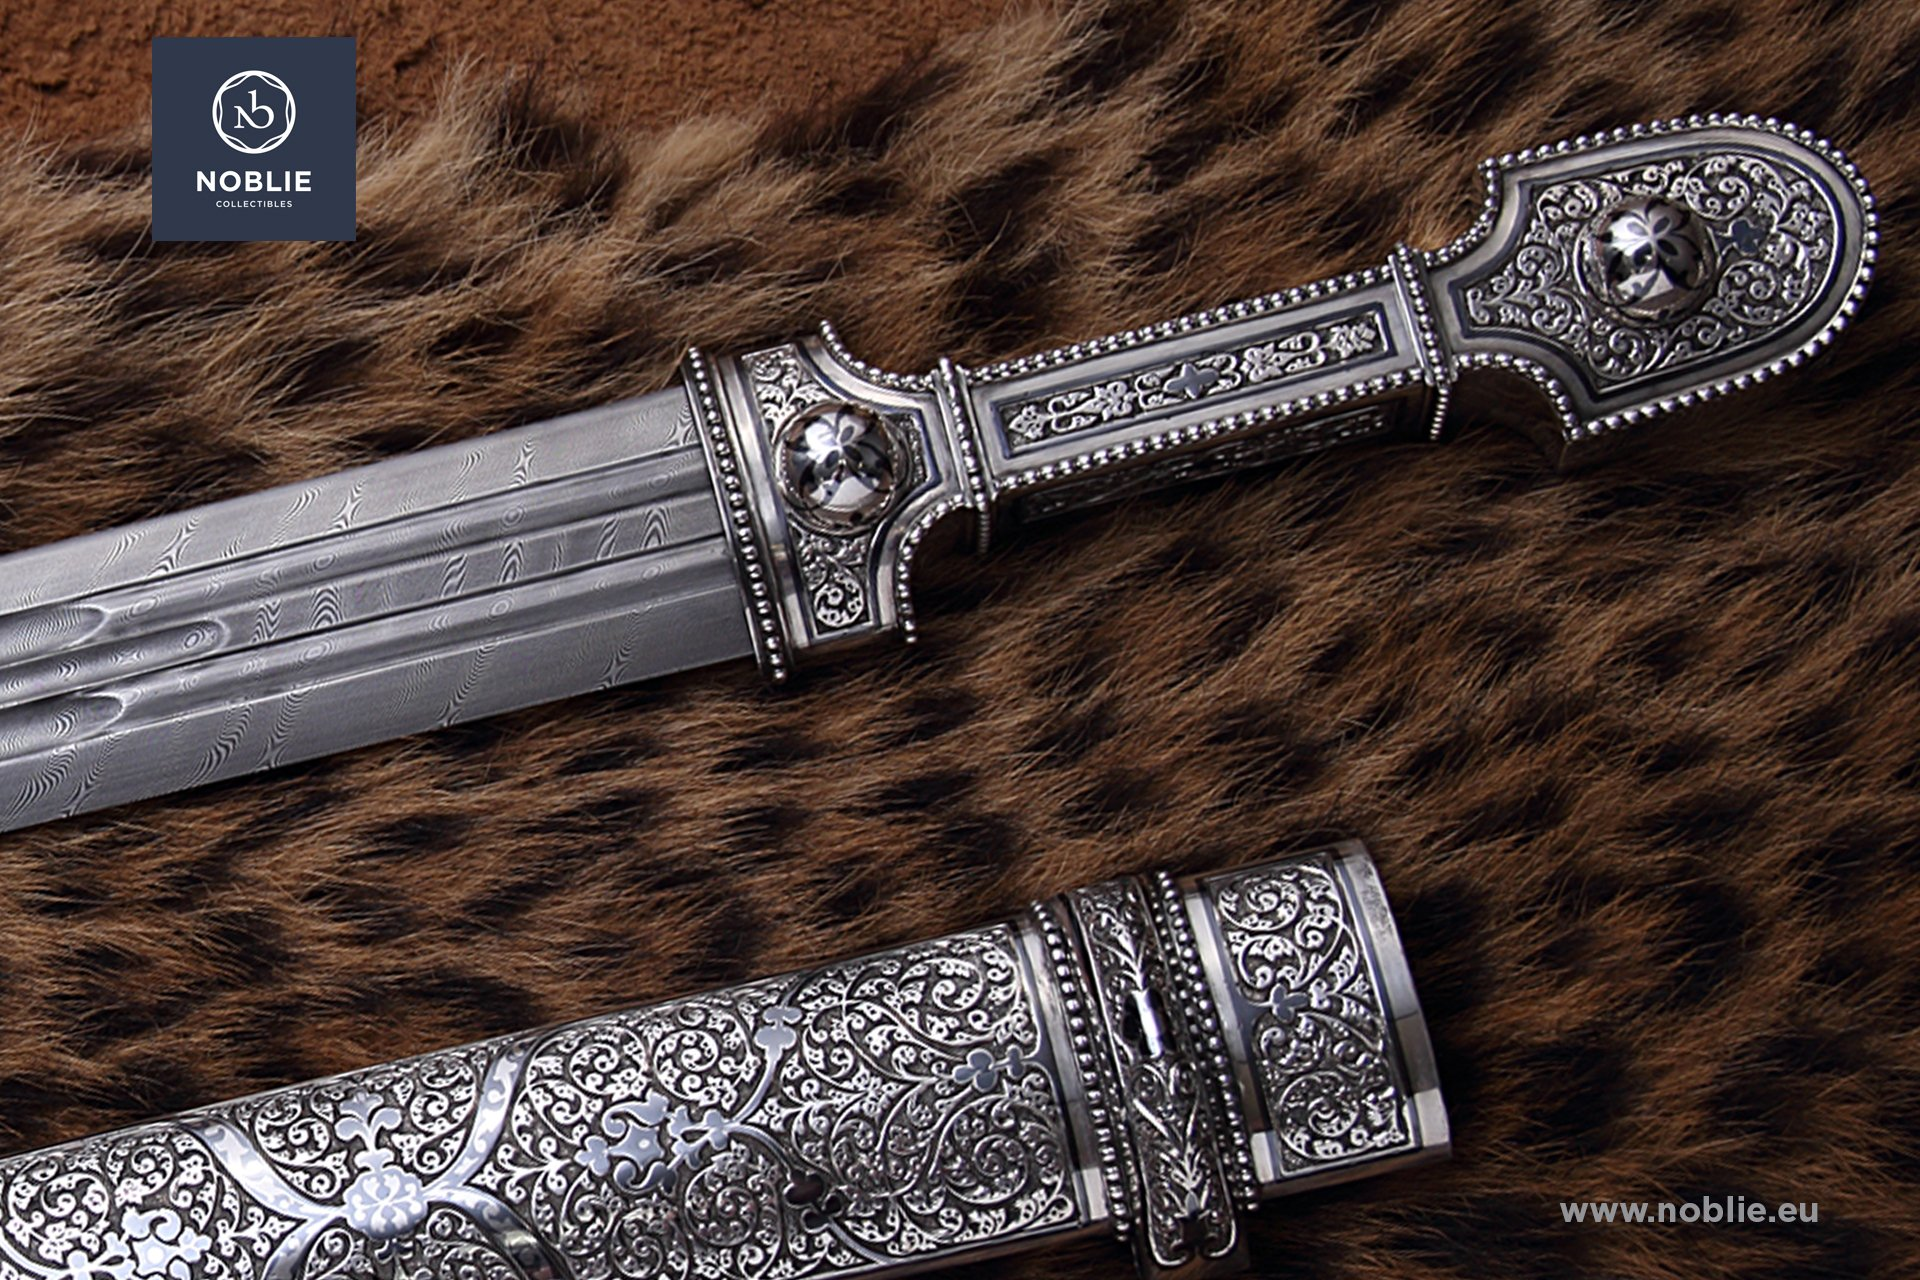 collectible dagger ''Silver qama''